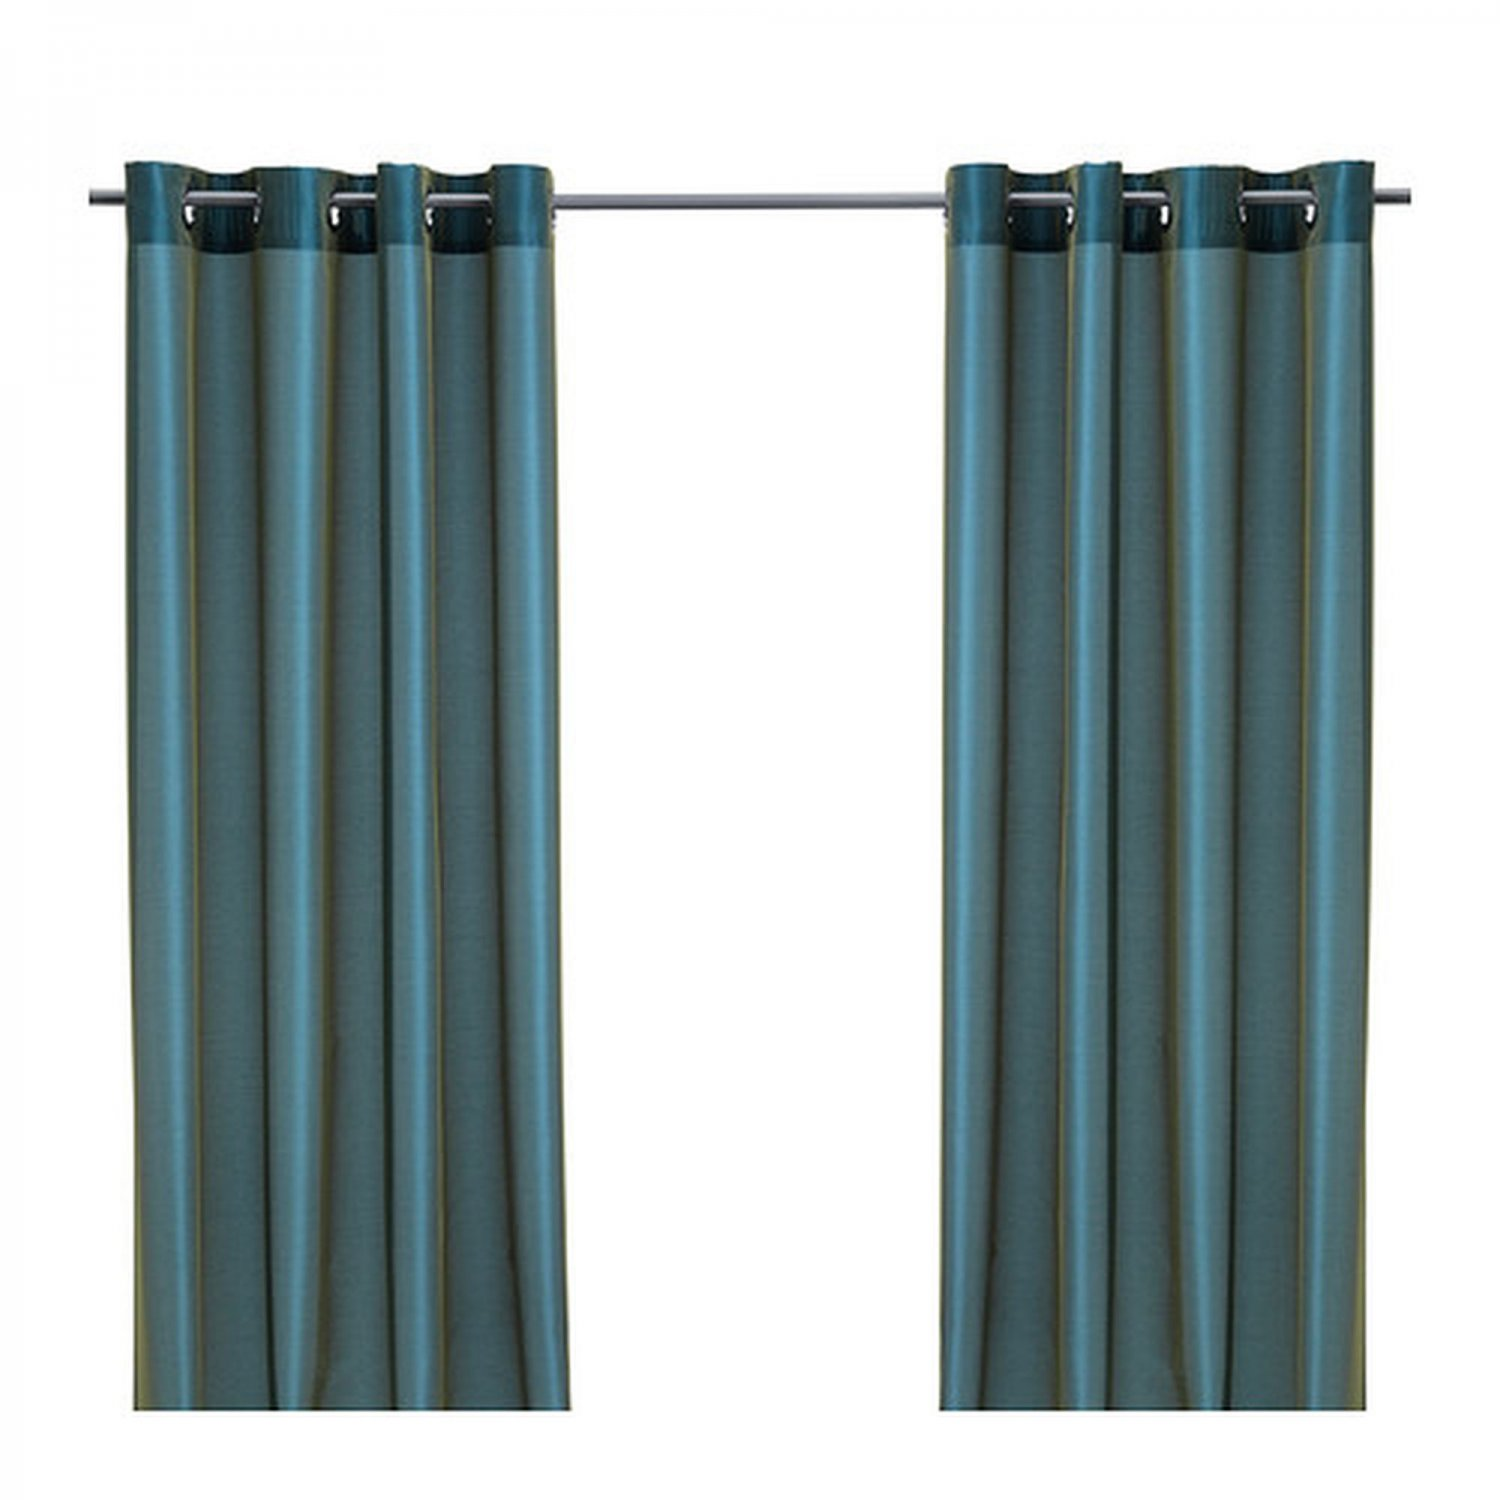 ikea parlbuske curtains green blue drapes 98 p rlbuske